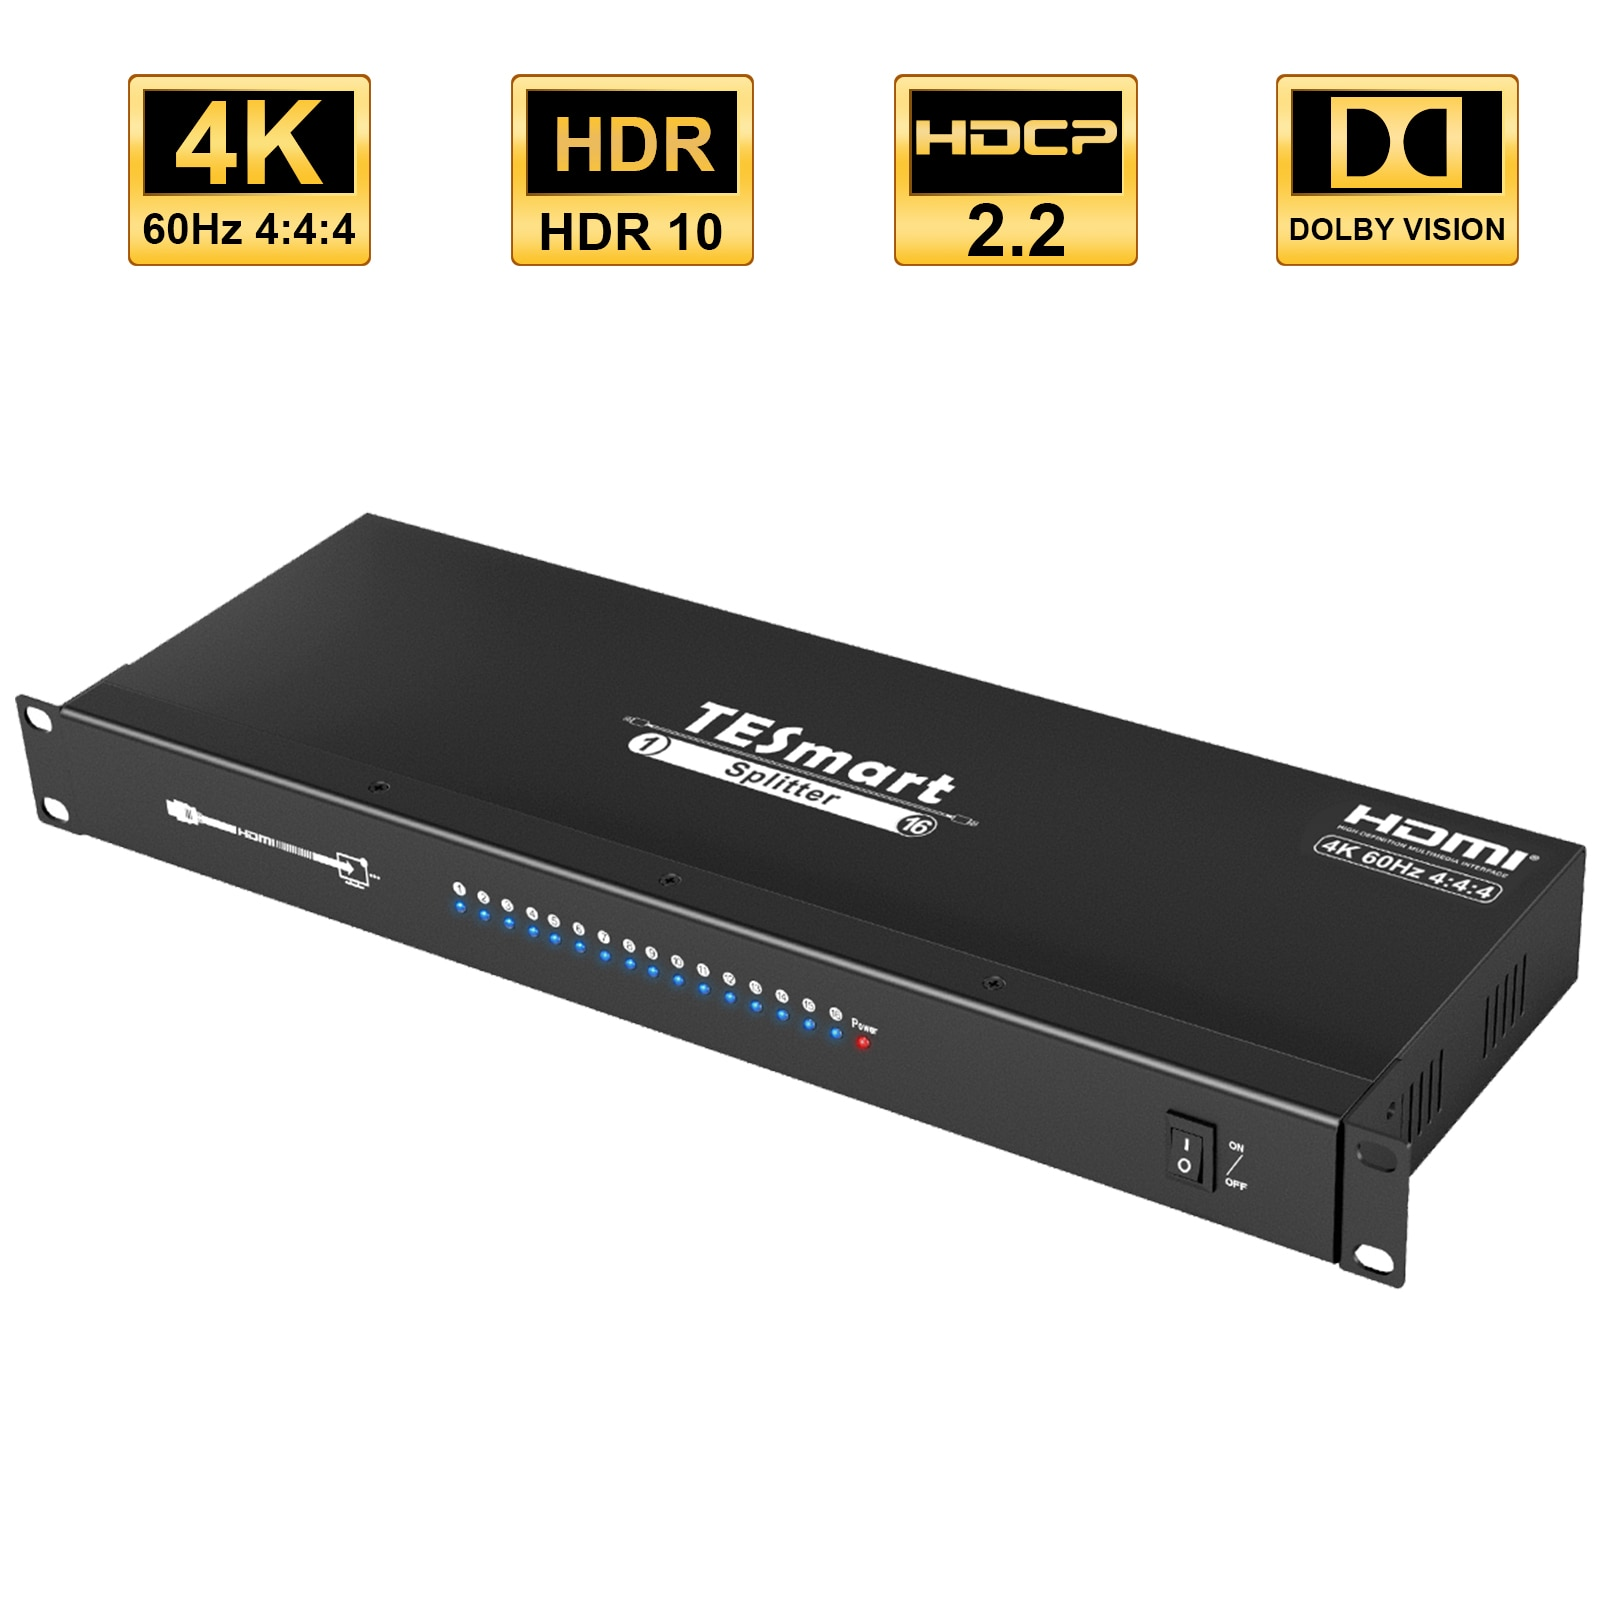 HDMI Splitter 1 in 16 Out Distribution Amplifier Support 4K @ 60Hz Ultra HD 1080P 3D HDCP 2.2 for  HDTV/PC/DVD